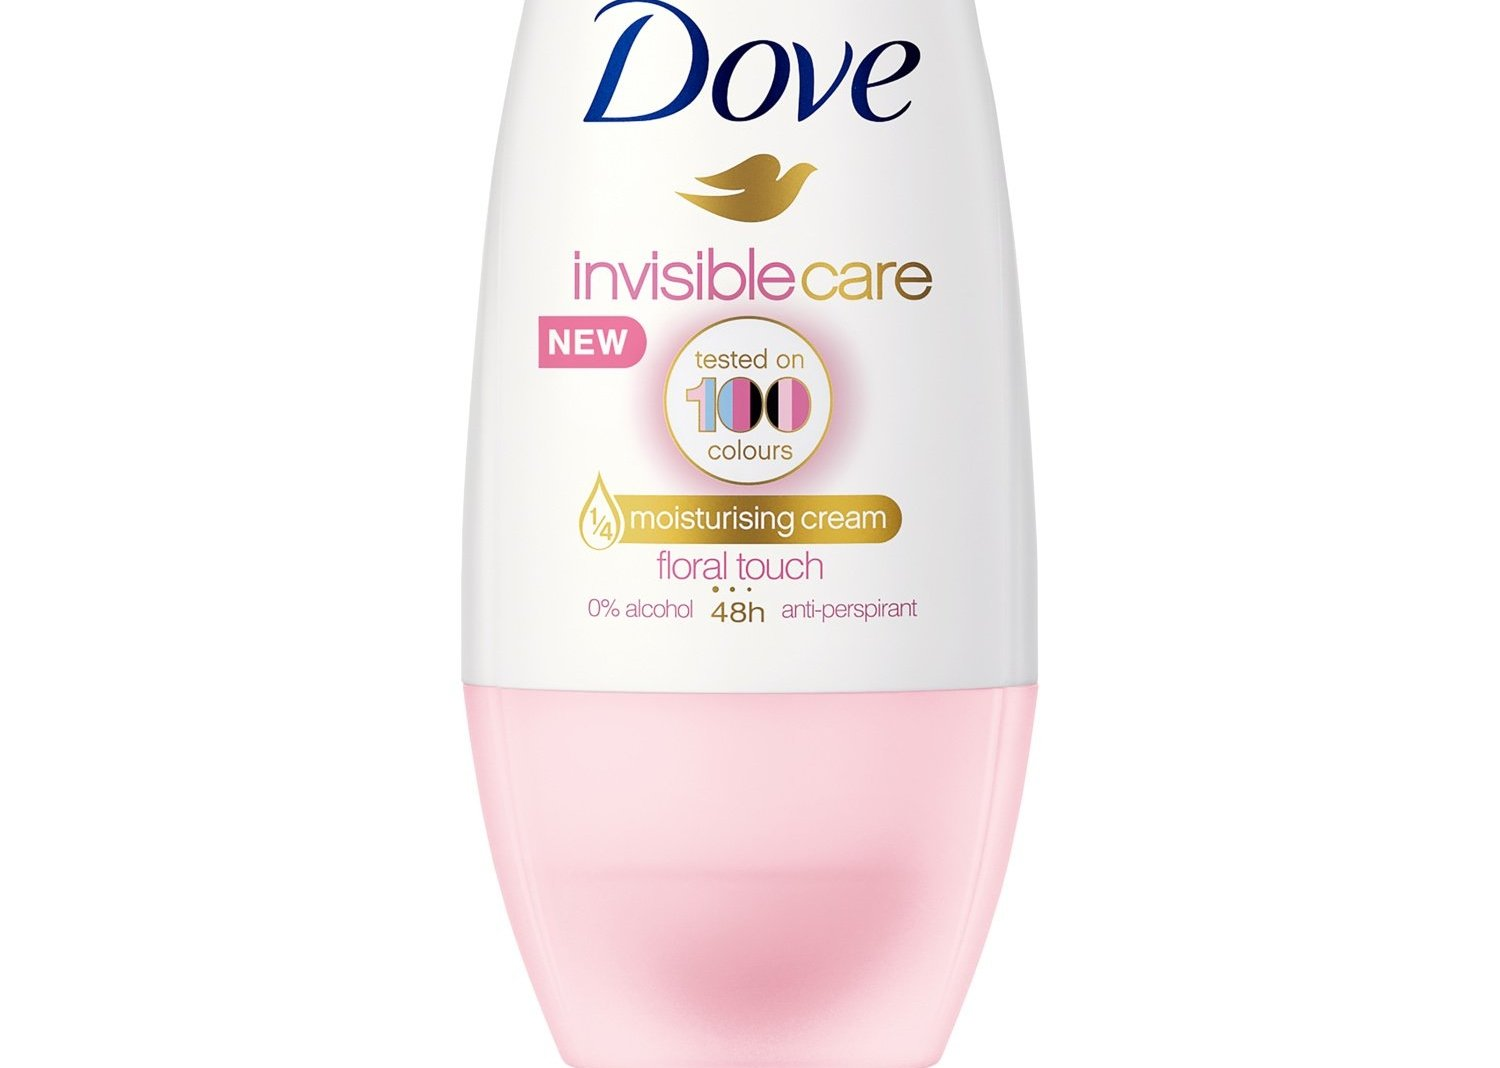 Dove Deo Roll On Invisible Care 48h Floral Touch Αποσμητικό 48ωρης Αντιιδρωτικής Προστασίας Χωρίς Λευκά Σημάδια στα Ρούχα 50ml